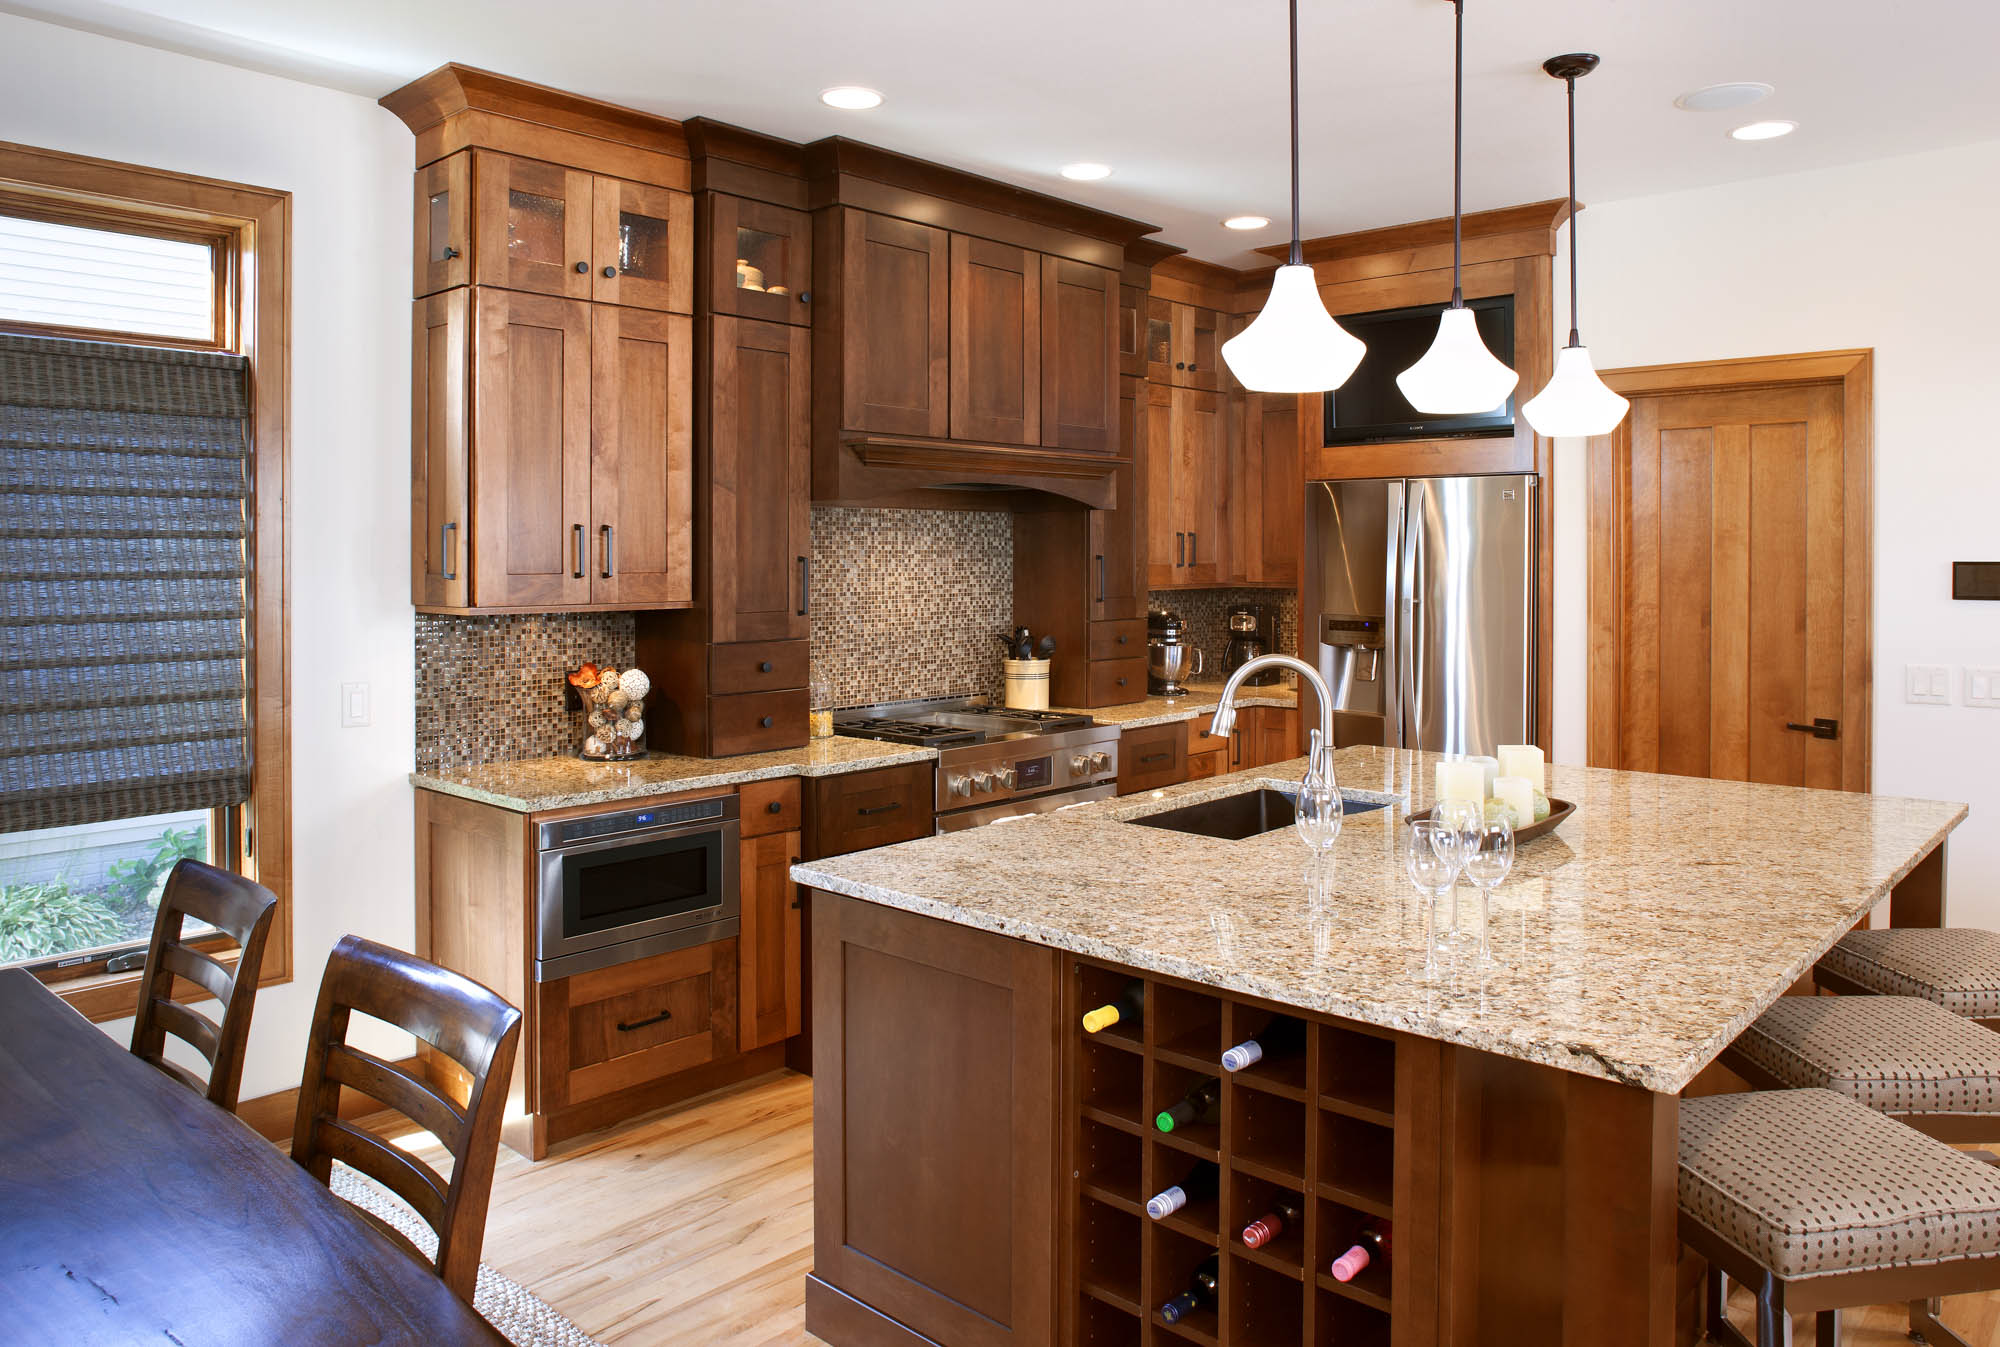 Stained kitchen cabinets in Harvest and Autumn by Showplace Cabinetry - view 2